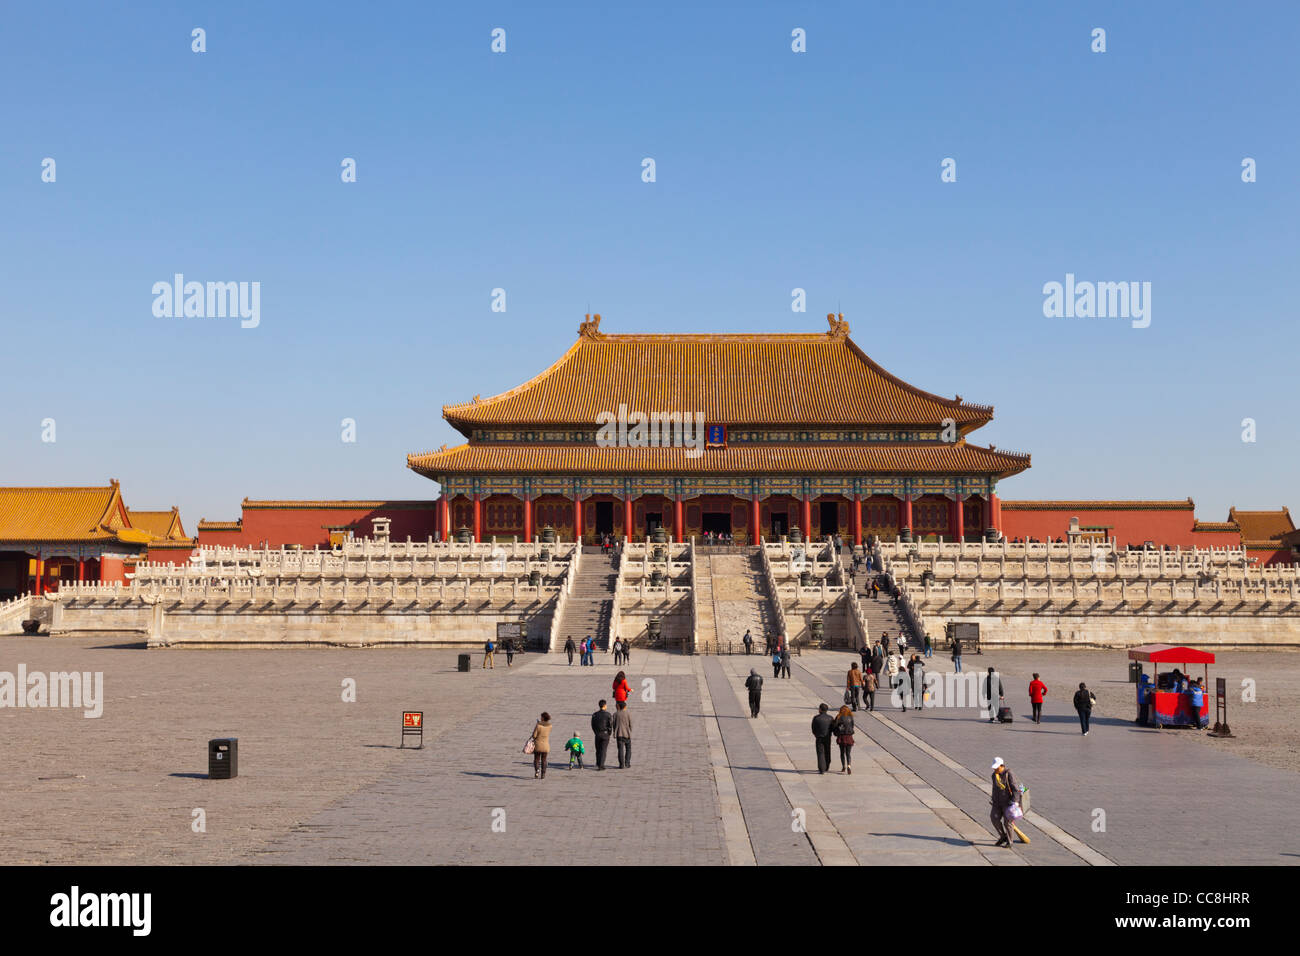 The Hall of Supreme Harmony in the Forbidden City, Beijing, from the Gate of Supreme Harmony. - Stock Image